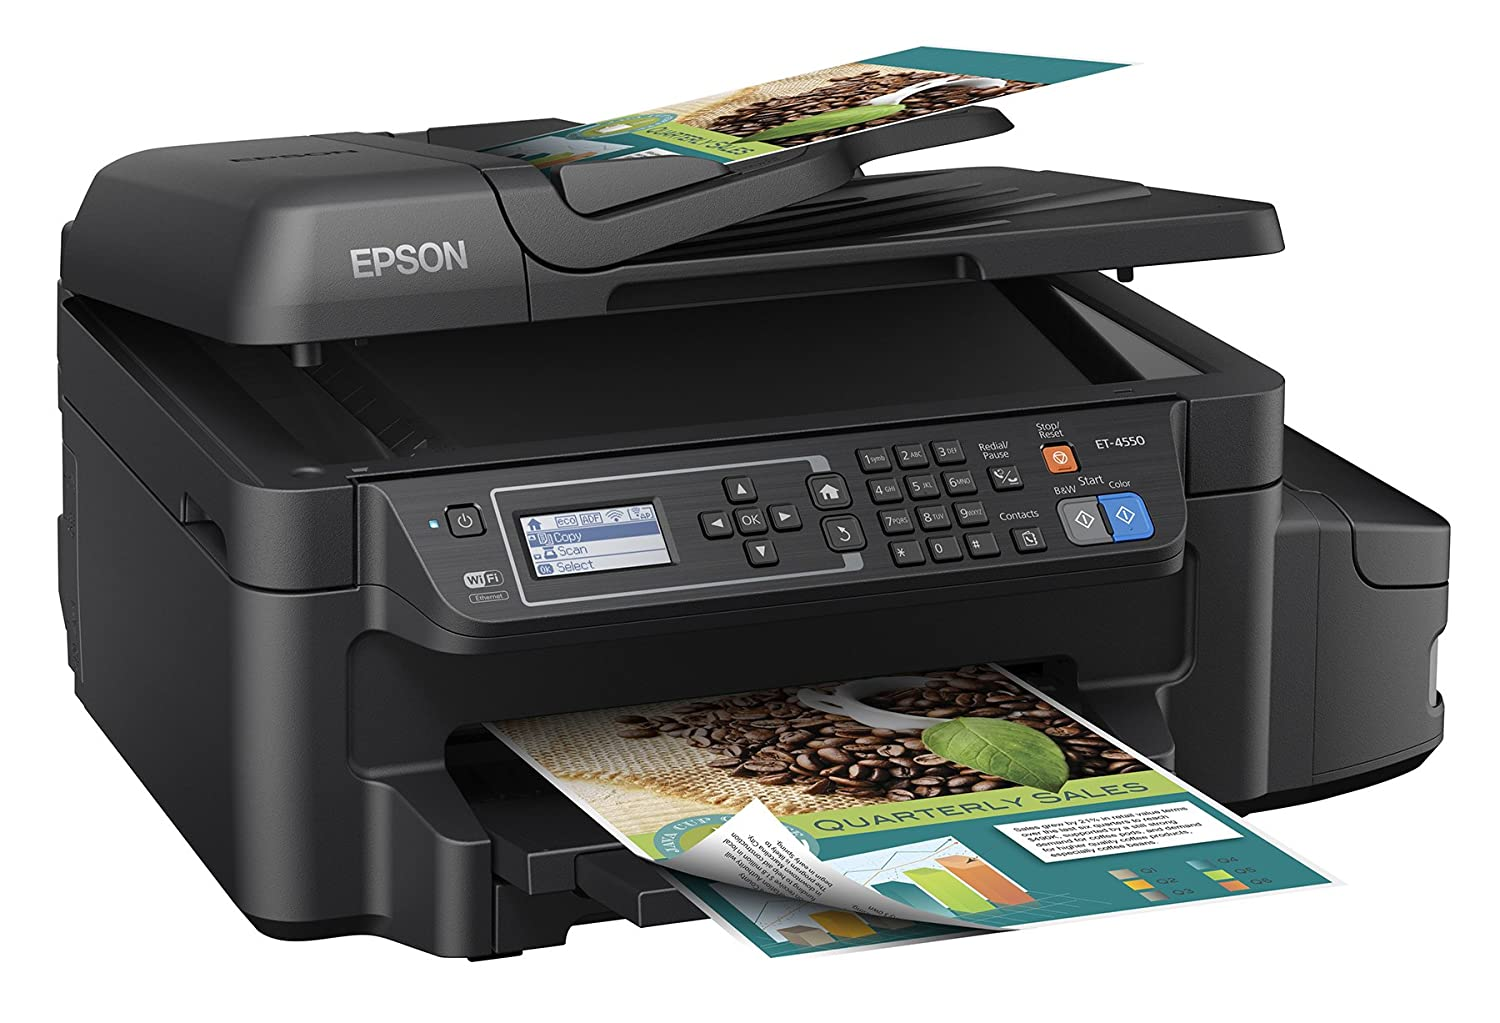 Color printing cost per page in india - Amazon Com Epson Workforce Et 4550 Ecotank Wireless Color All In One Supertank Printer With Scanner Copier Fax Ethernet Wi Fi Wi Fi Direct